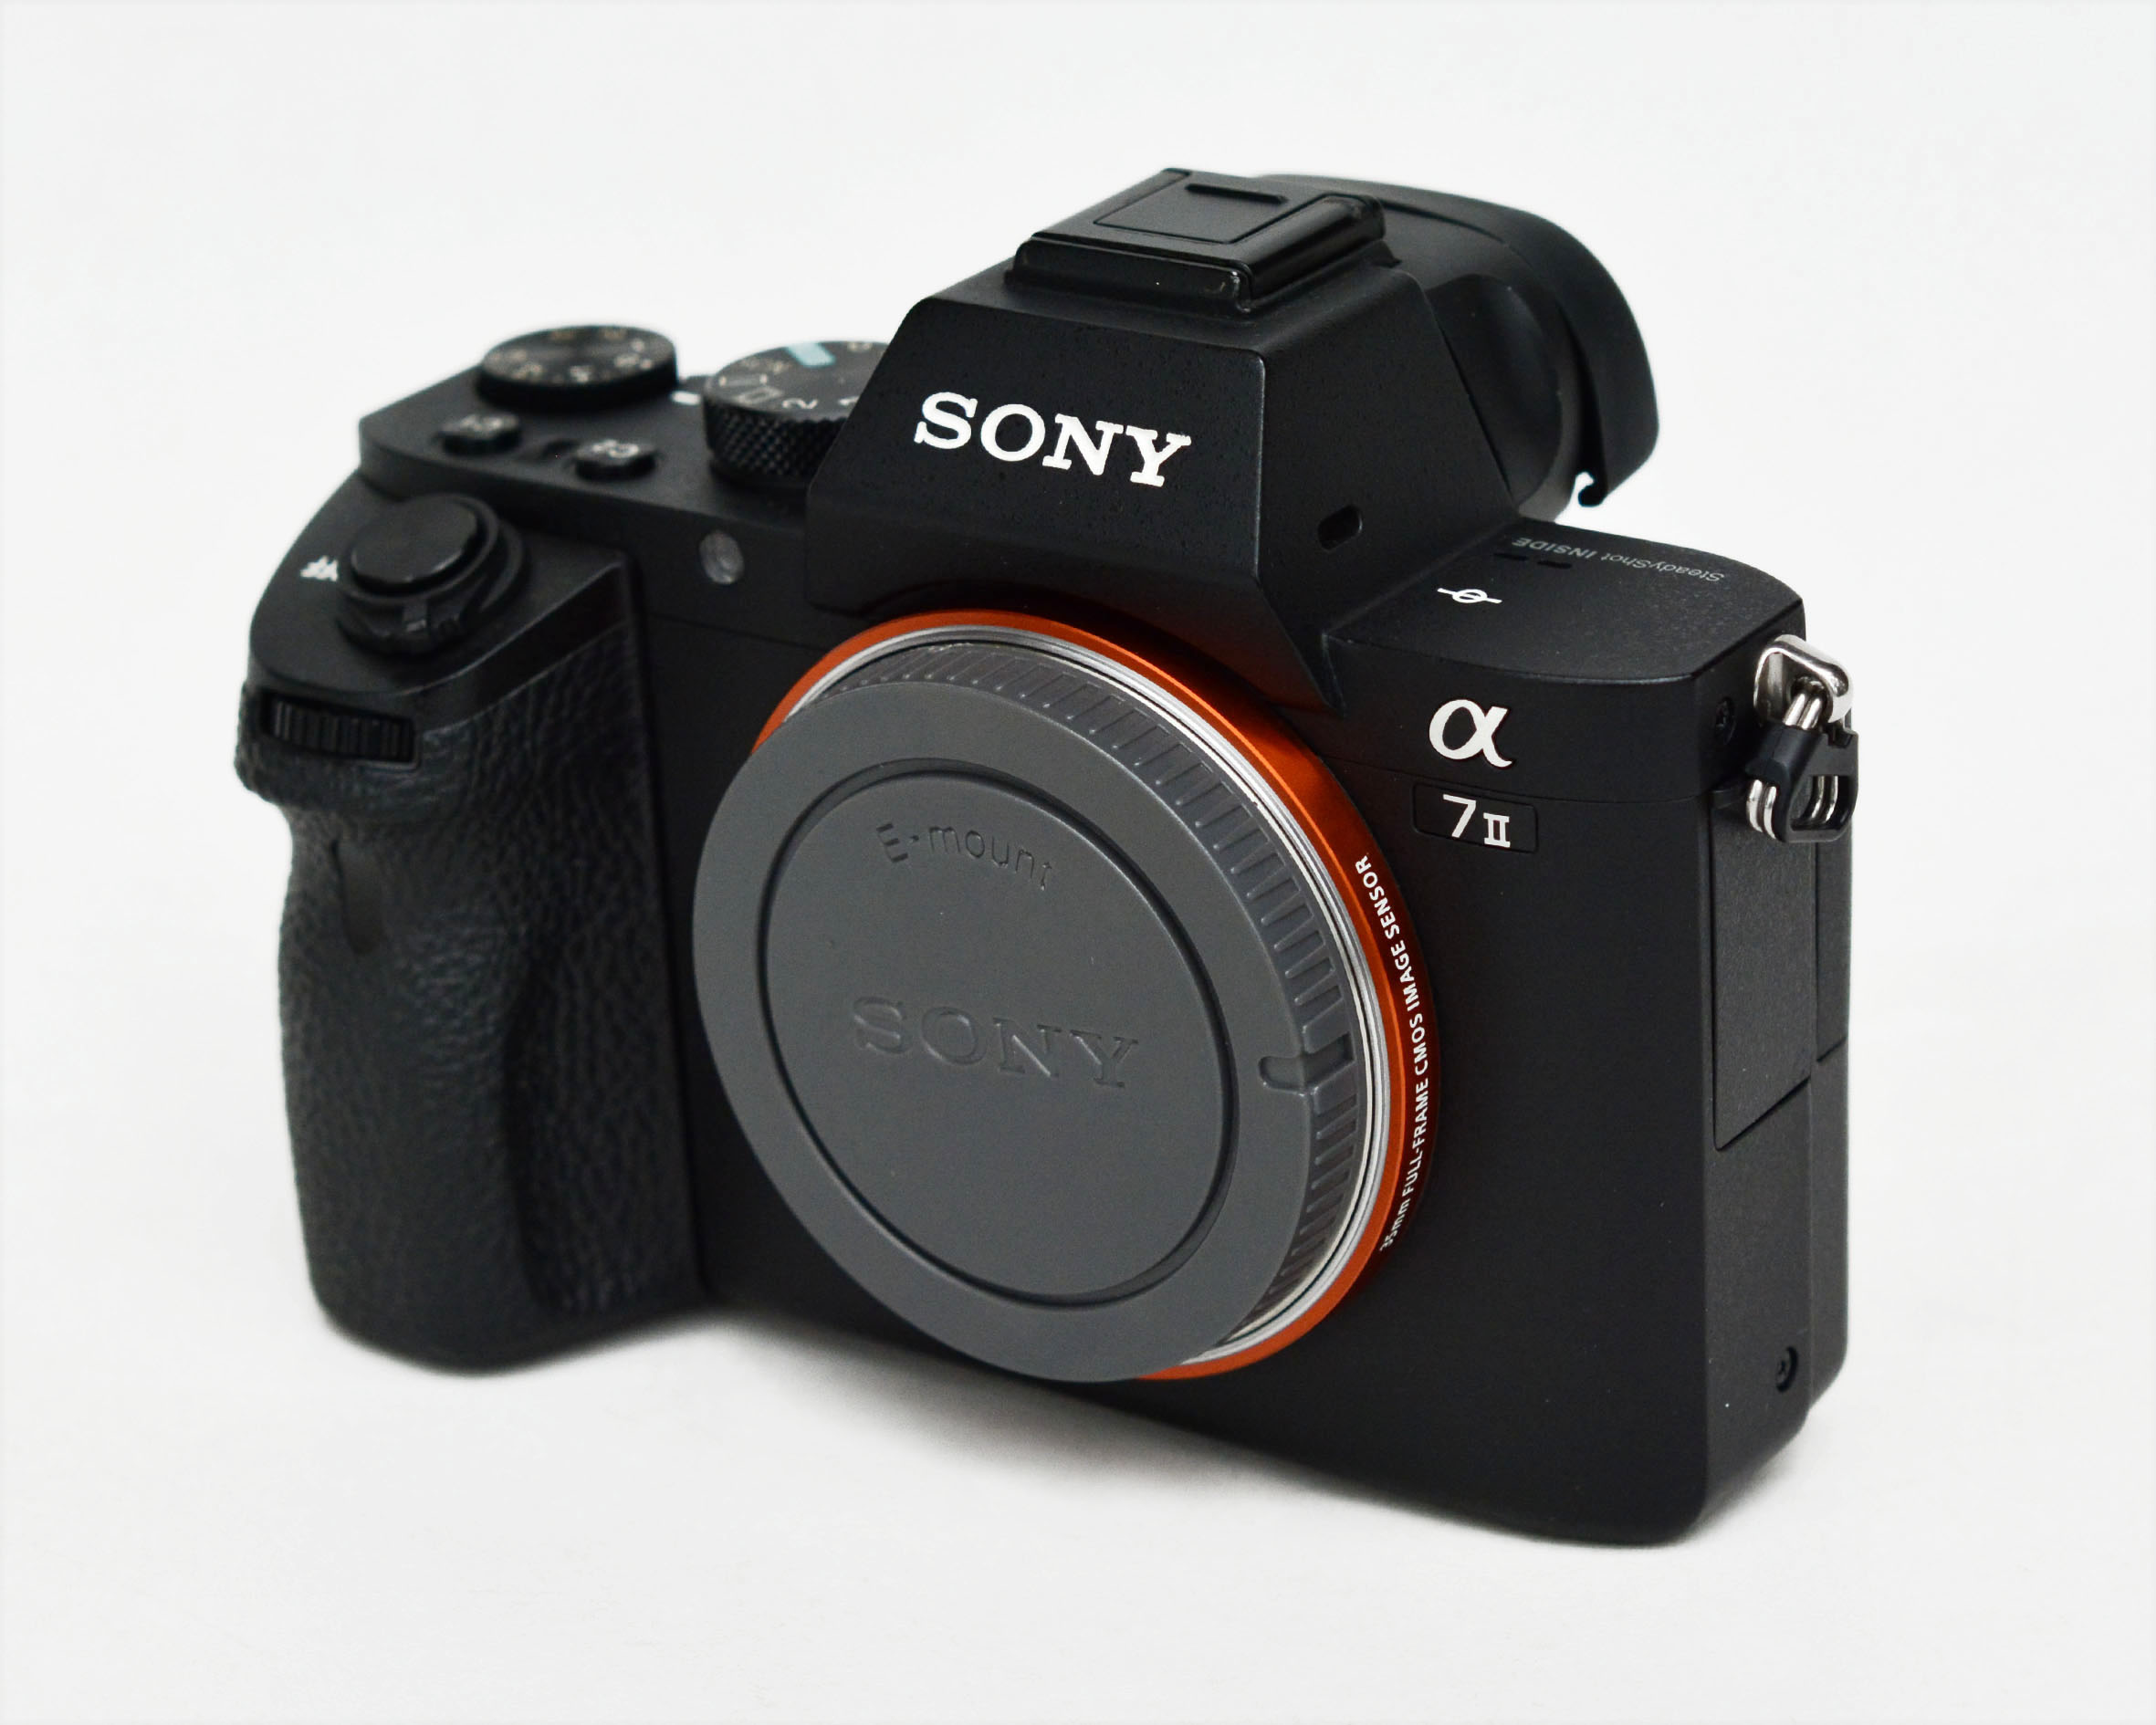 Sony A7 Mark II body